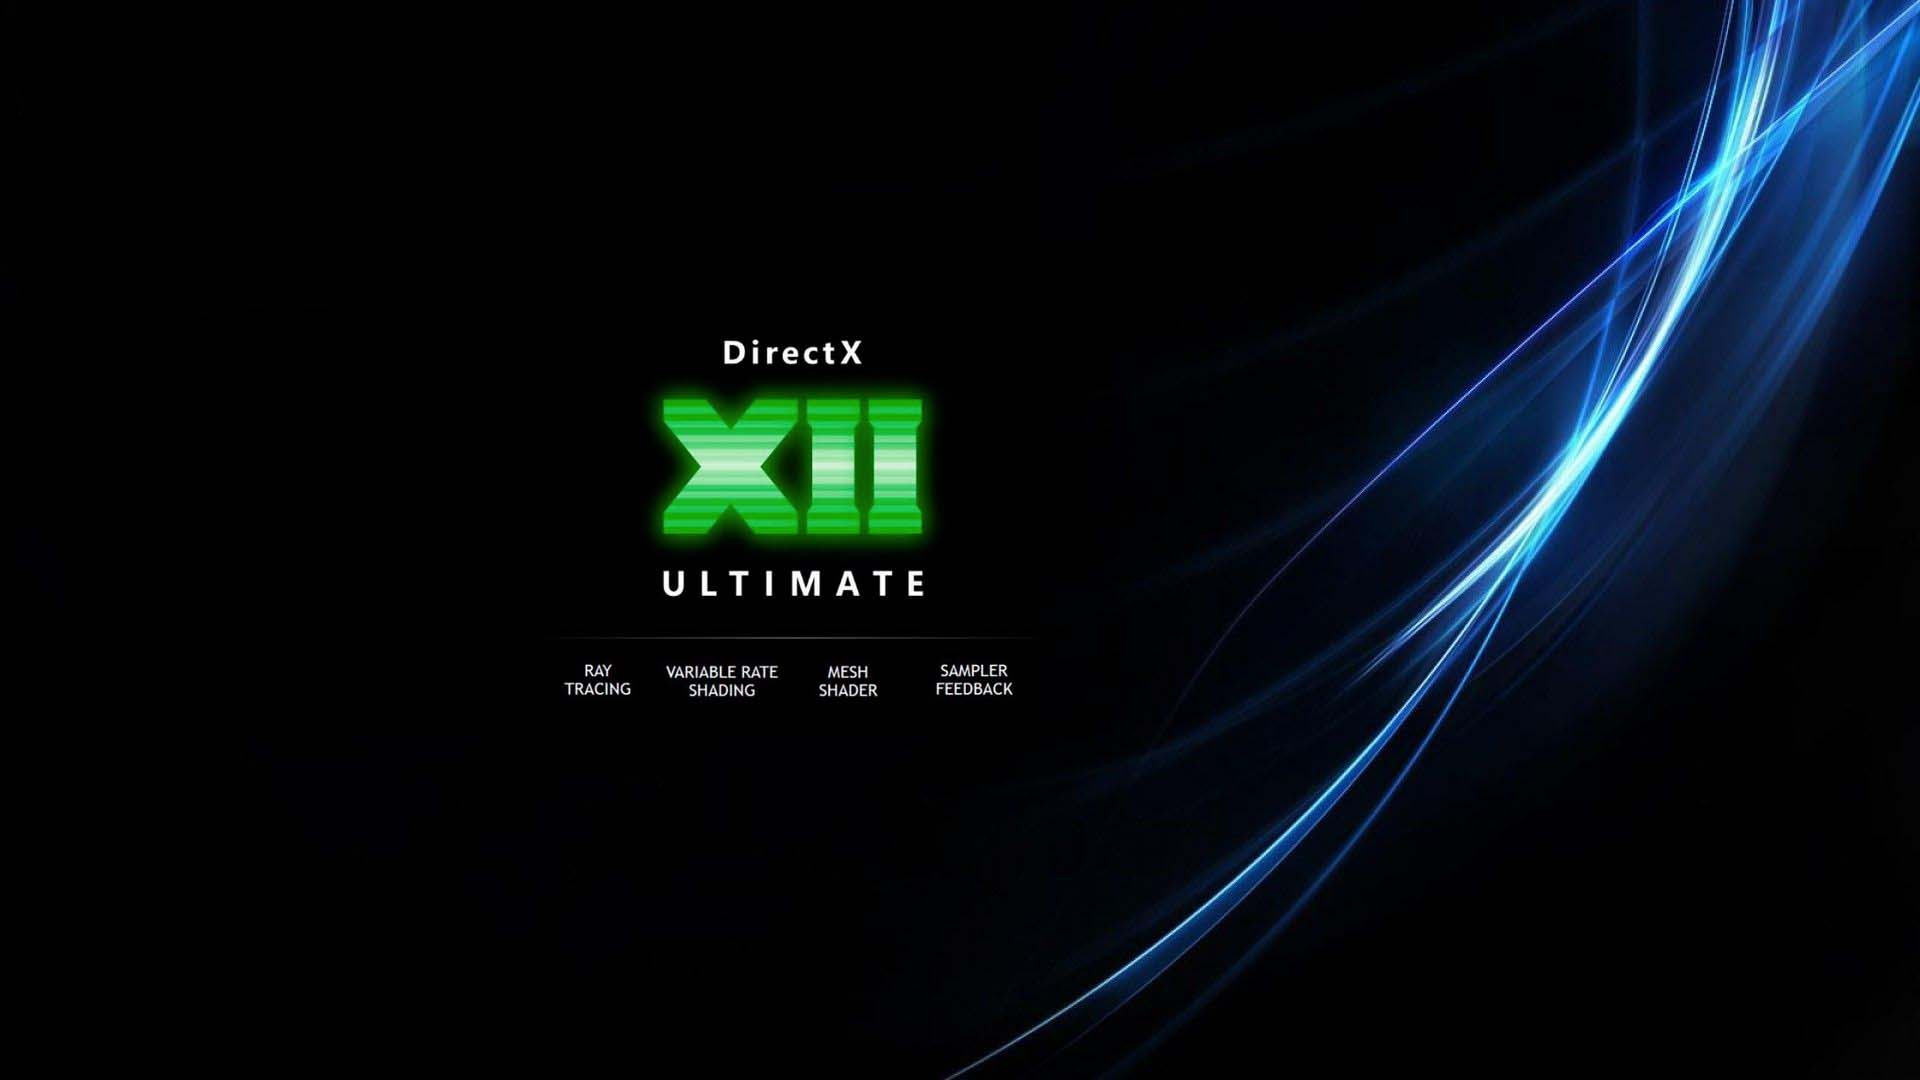 All the differences between DirectX 12 and DirectX 11